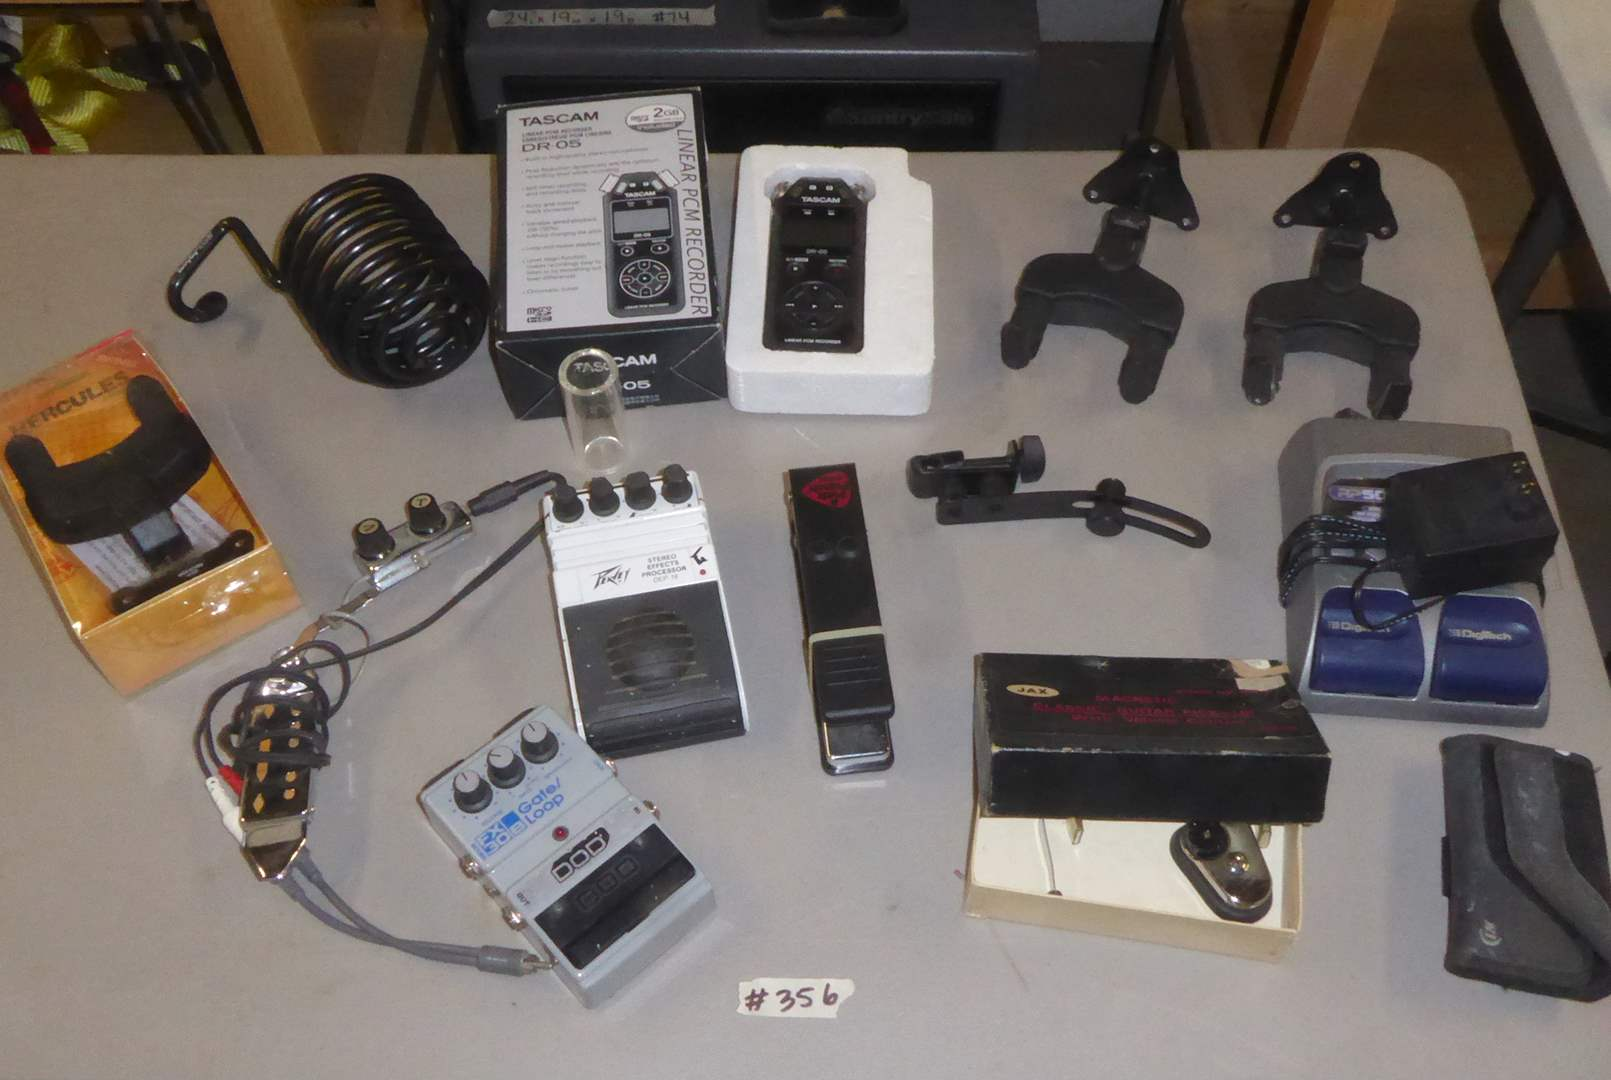 Lot # 356 - Tascam DR-05 Linear PCM Recorder, Peavey Effects Processor, Pick Punch & More